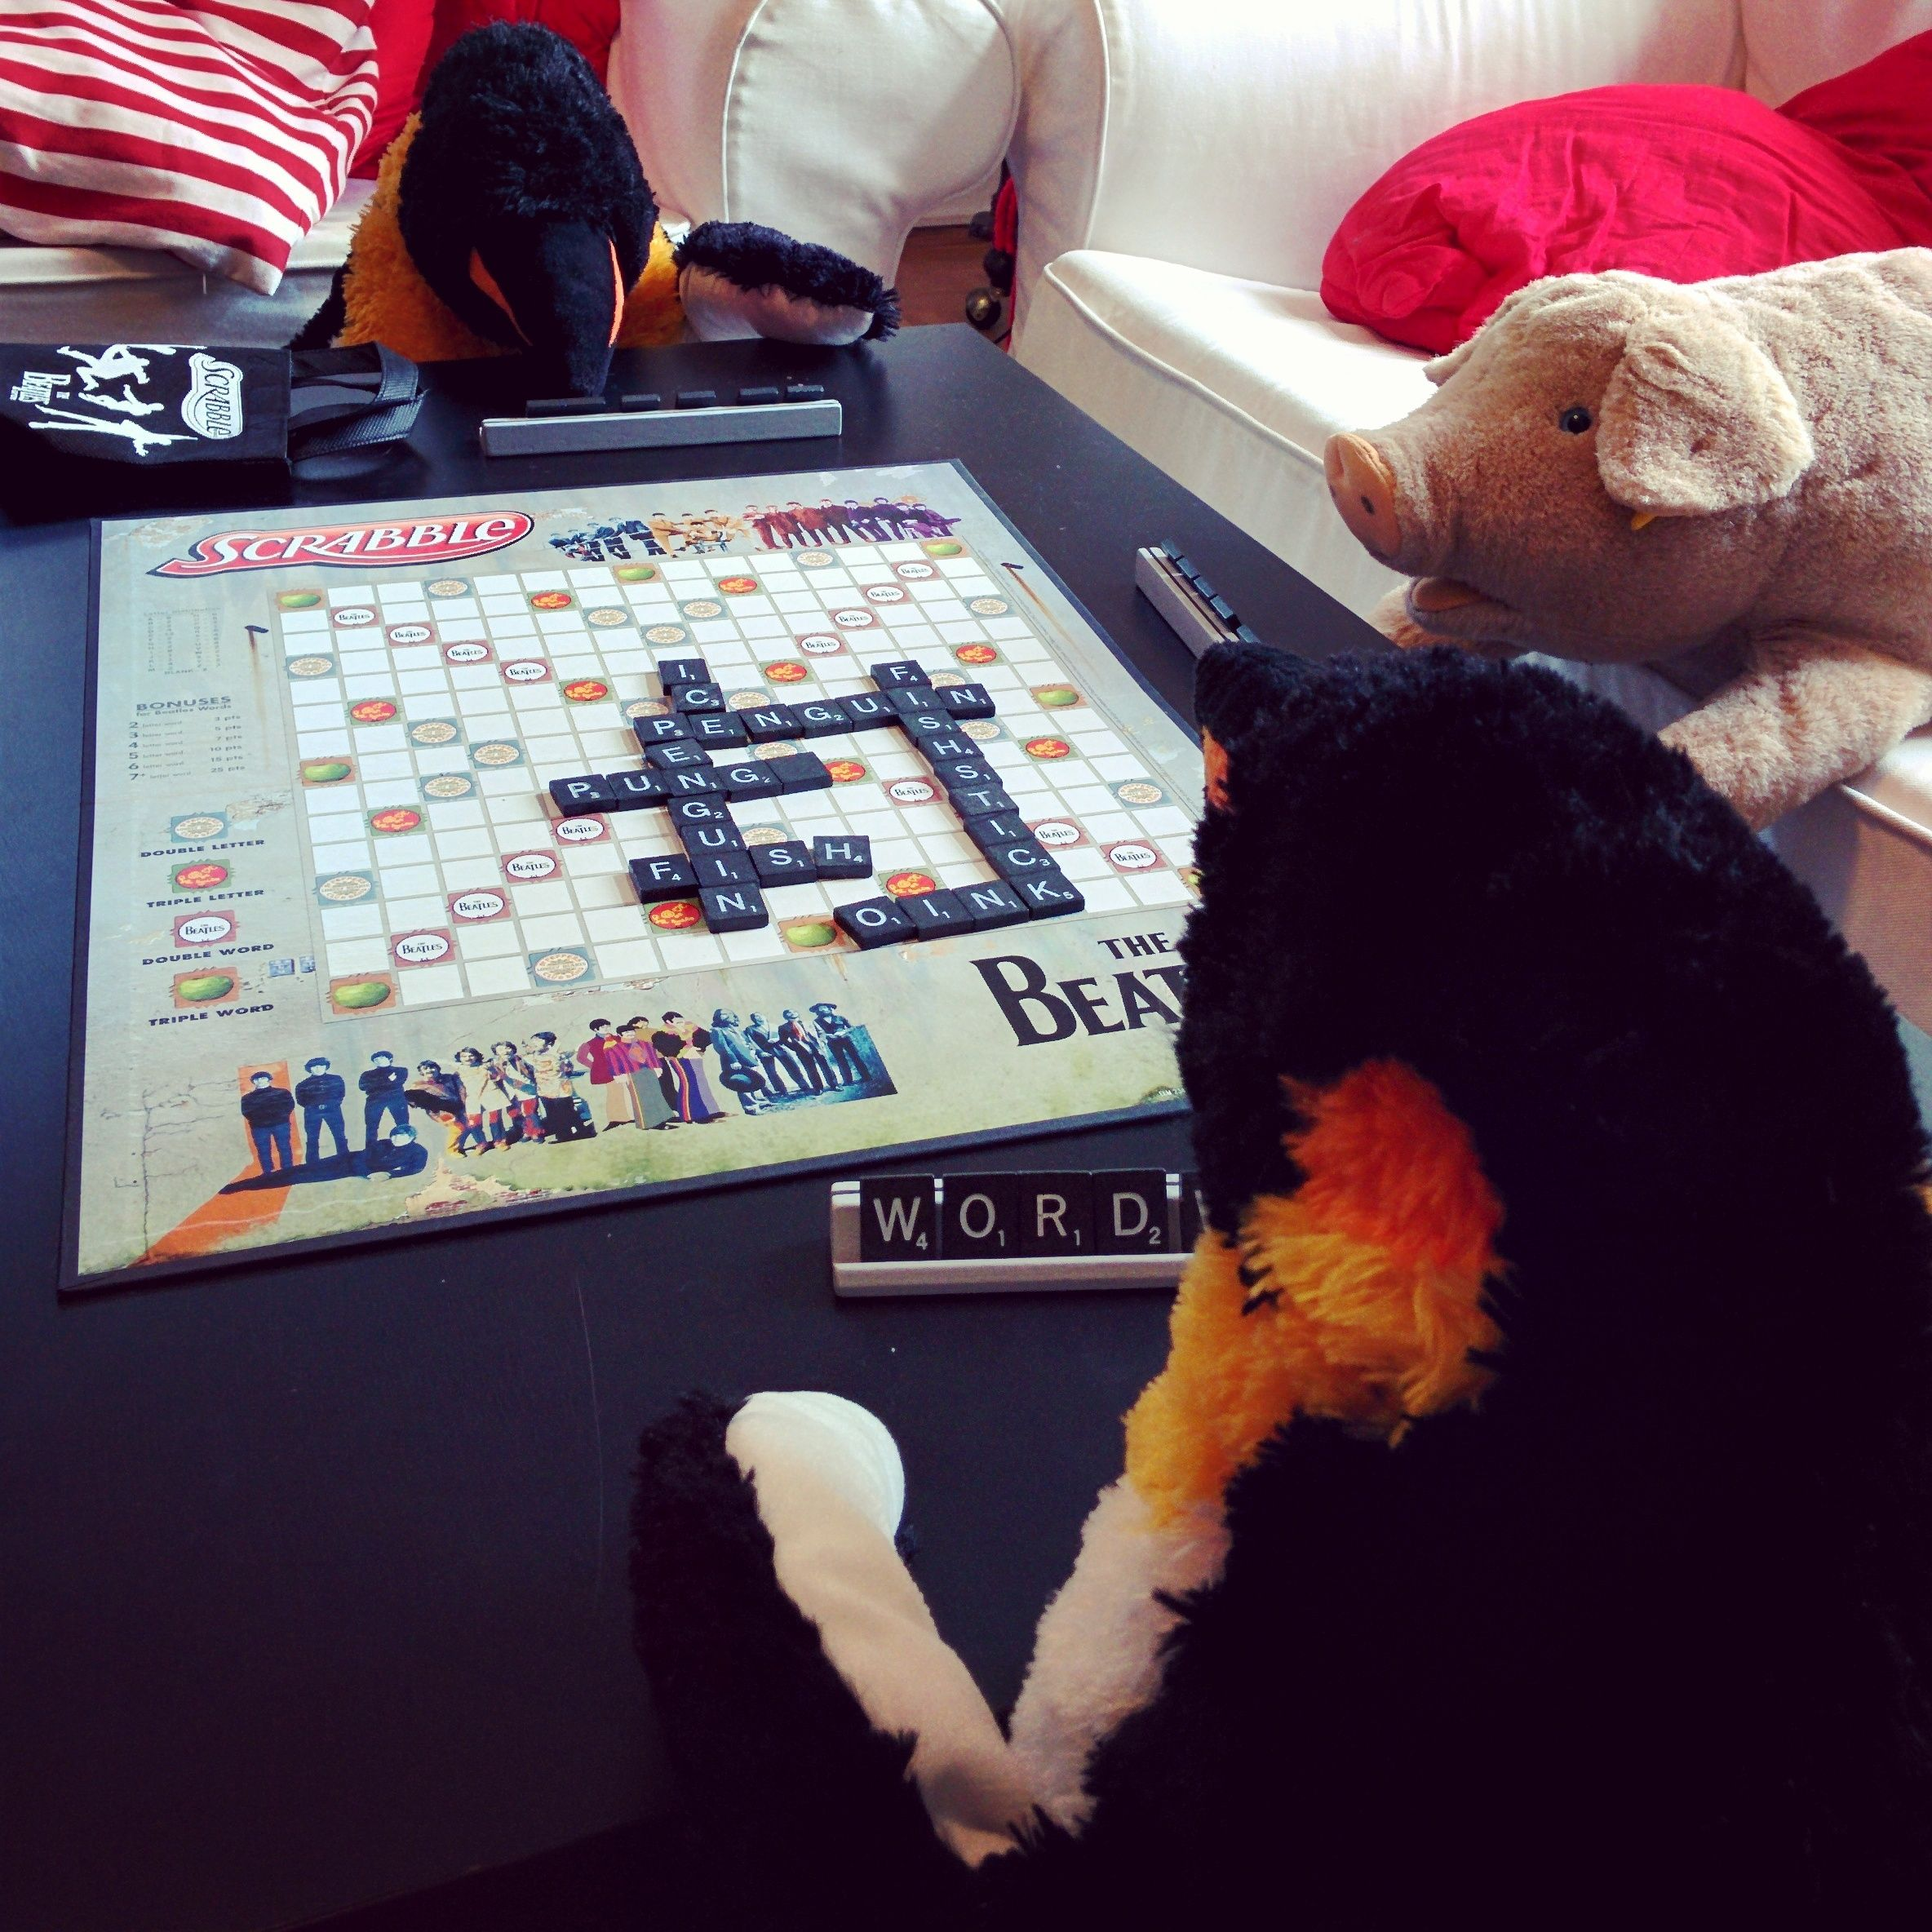 "tgif! mr pungu, his lovely wife and buddy mr oink are having a board game night - starting with scrabble. the winning word is ""fish"", of course.  #scrabble #gamenight #boardgame #boardgames #penguin #penguins #pinguin #pinguine #pinguino #pinguinos #pinguim #pingouin #pingüino #ペンギン #пингвин #펭귄 #instabird #antarctica #stuffedanimal #pingu #penguinlove #pinguinito #montythepenguin #johnlewis #johnlewisadvert #montypenguin #monty"